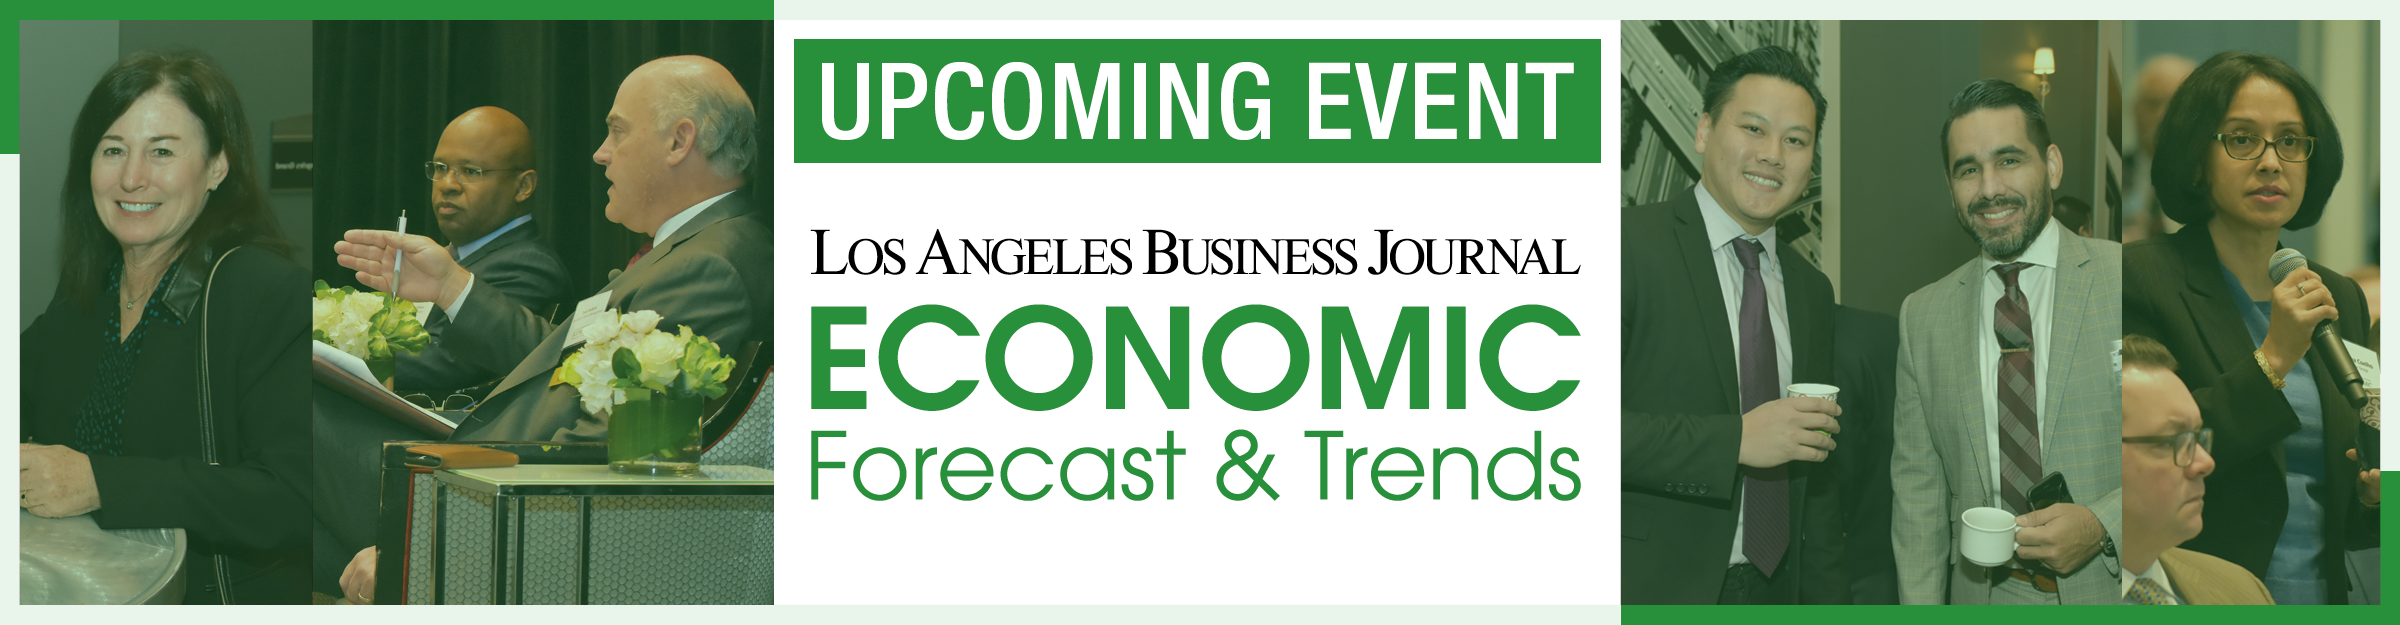 Los Angeles Business Journal Current and Upcoming Event